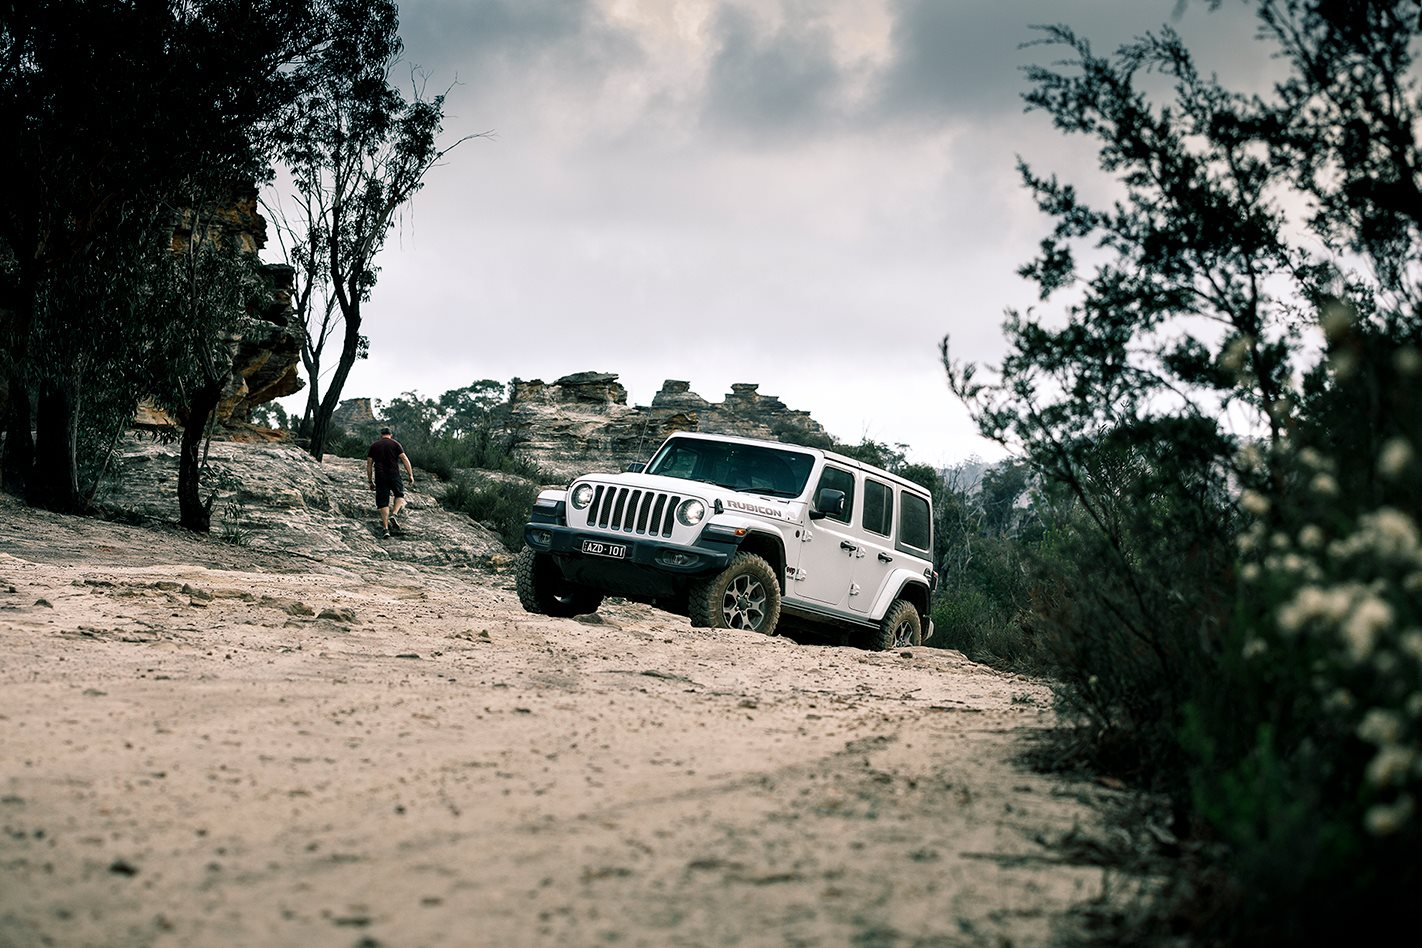 Going in search of the Lithgow Panther in a Jeep Wrangler Rubicon